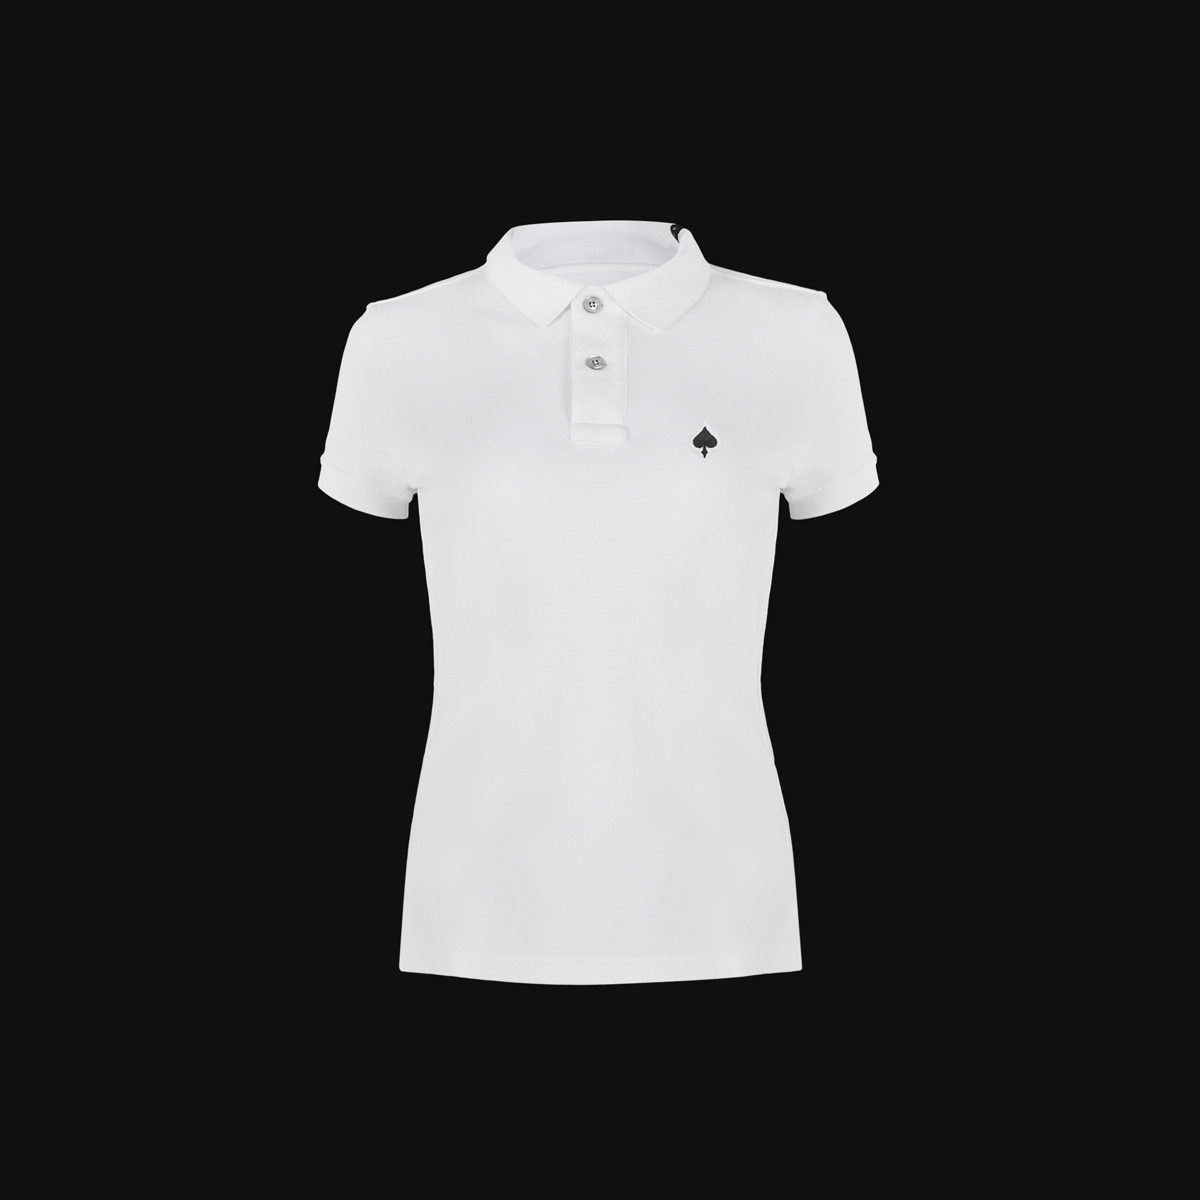 The White Ace polo for woman